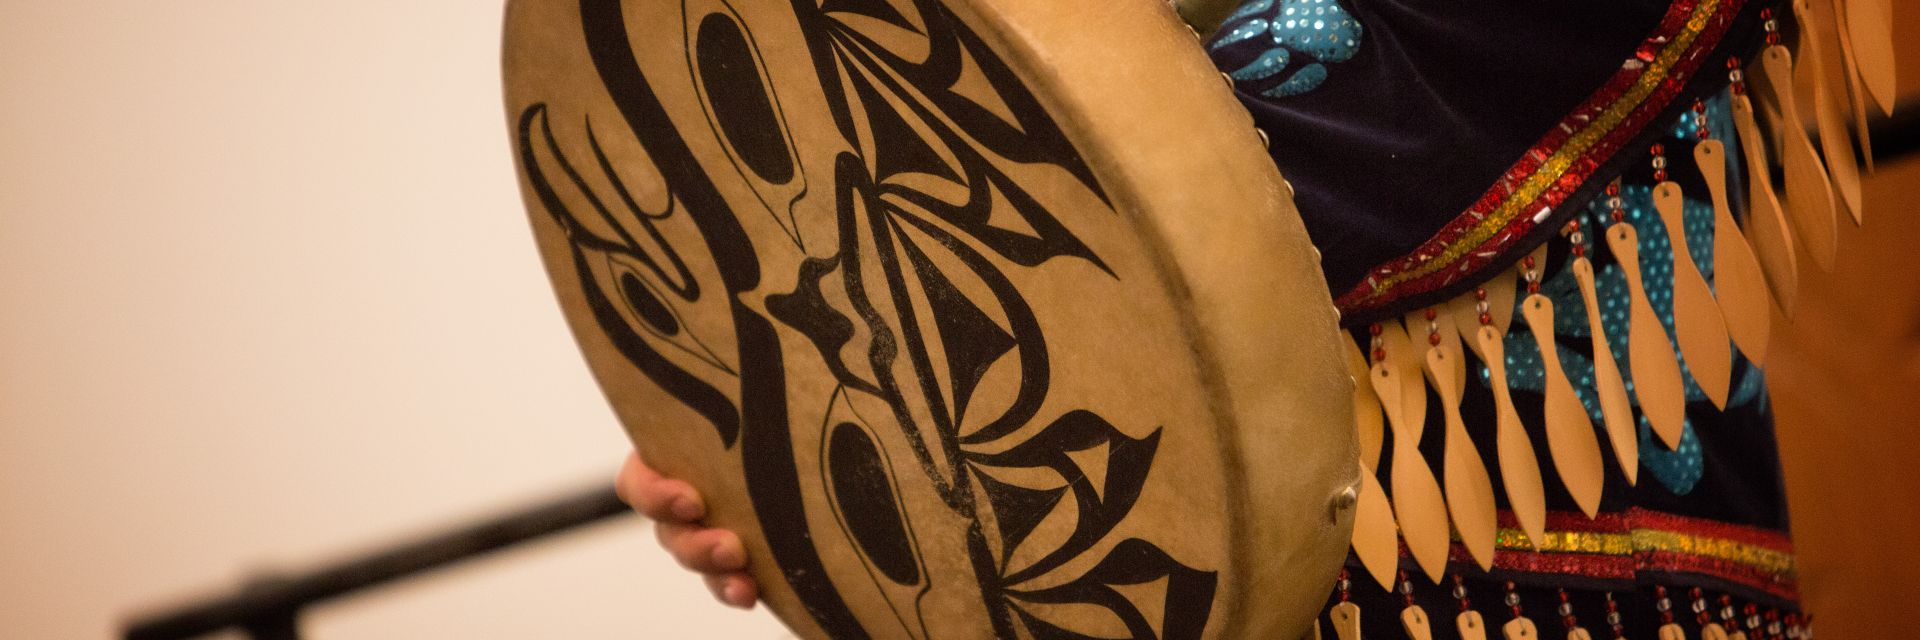 A closeup of an Indigenous drum with intricate black designs